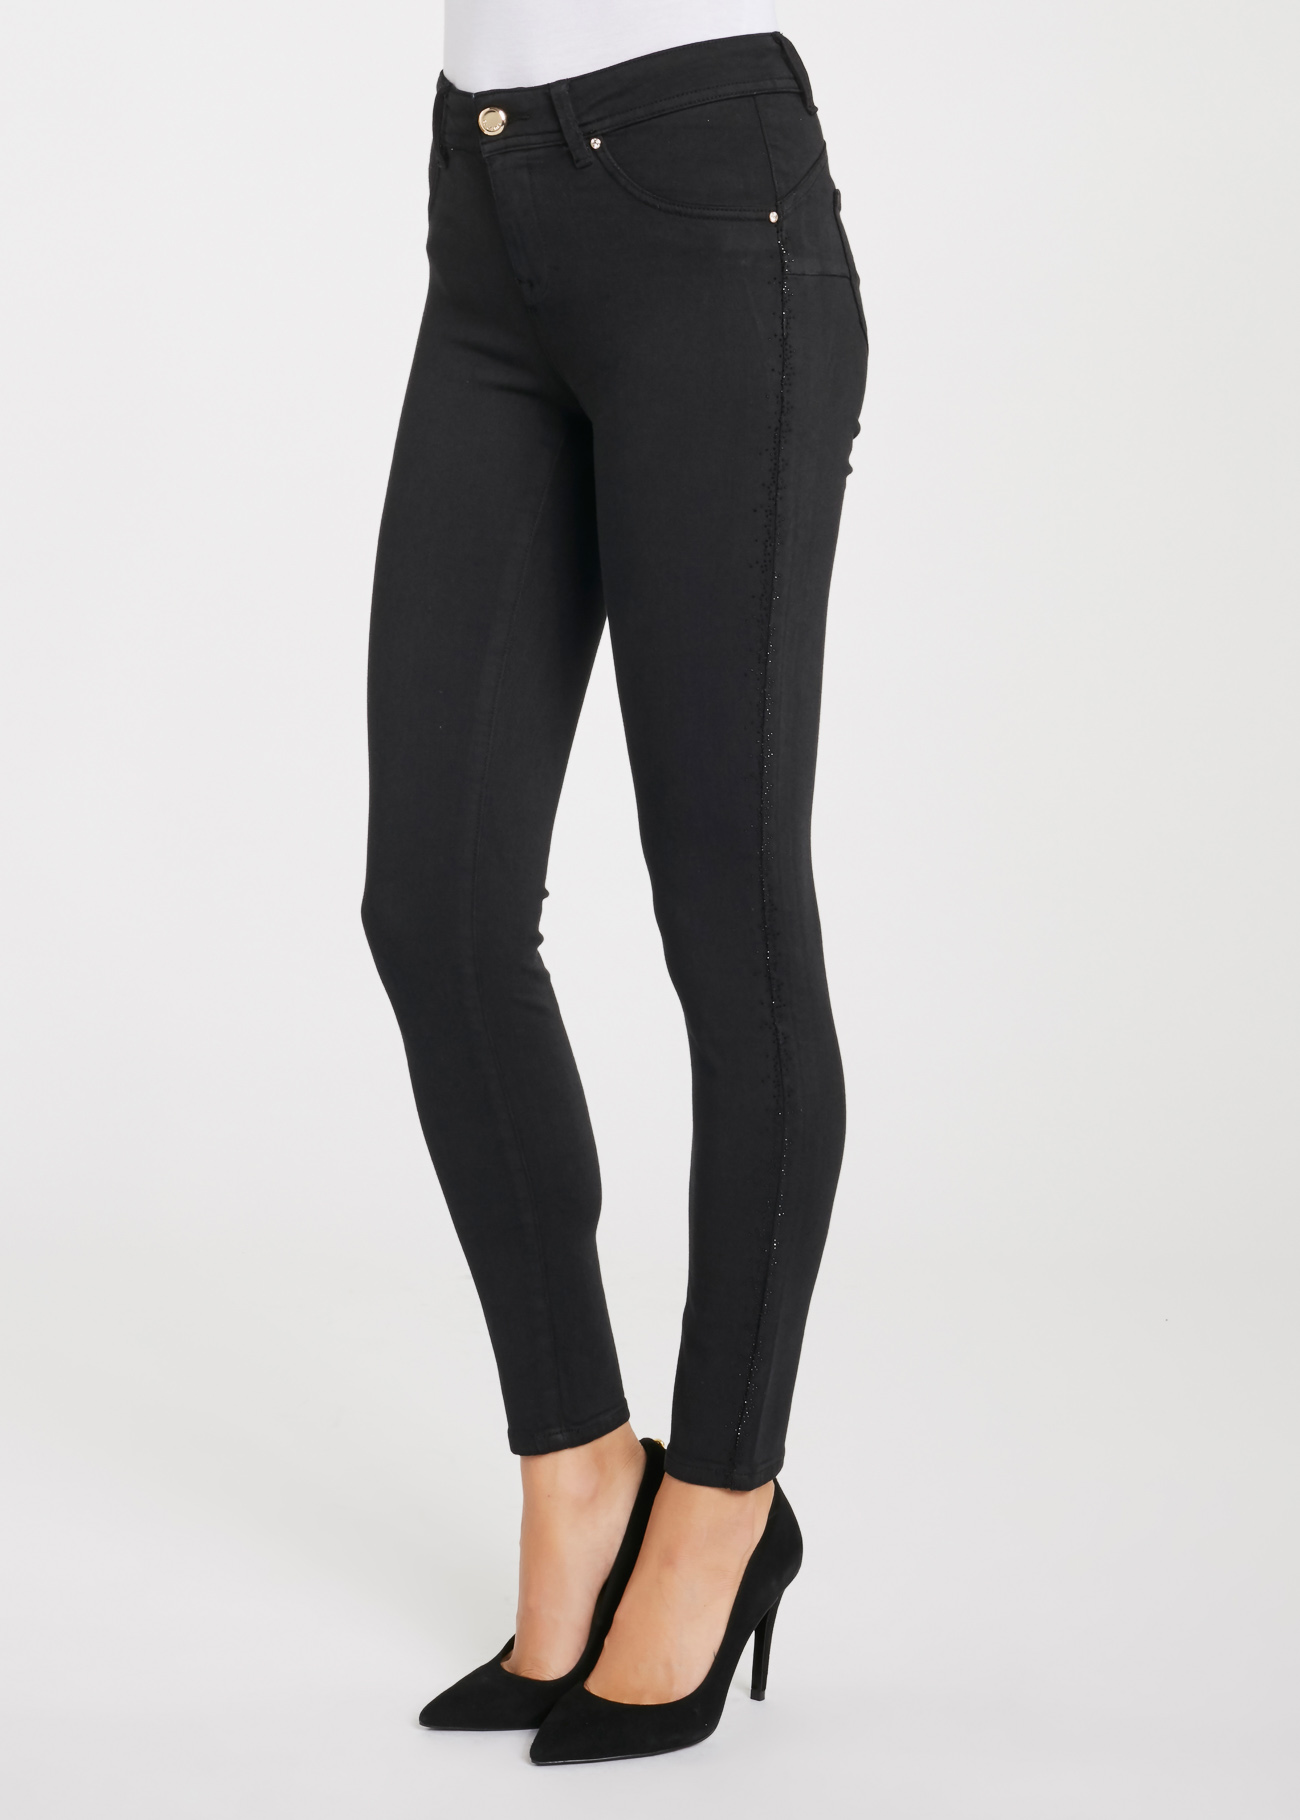 5-pocket trousers,  slim fit very elastic trousers  GAUDI |  | BD250042001